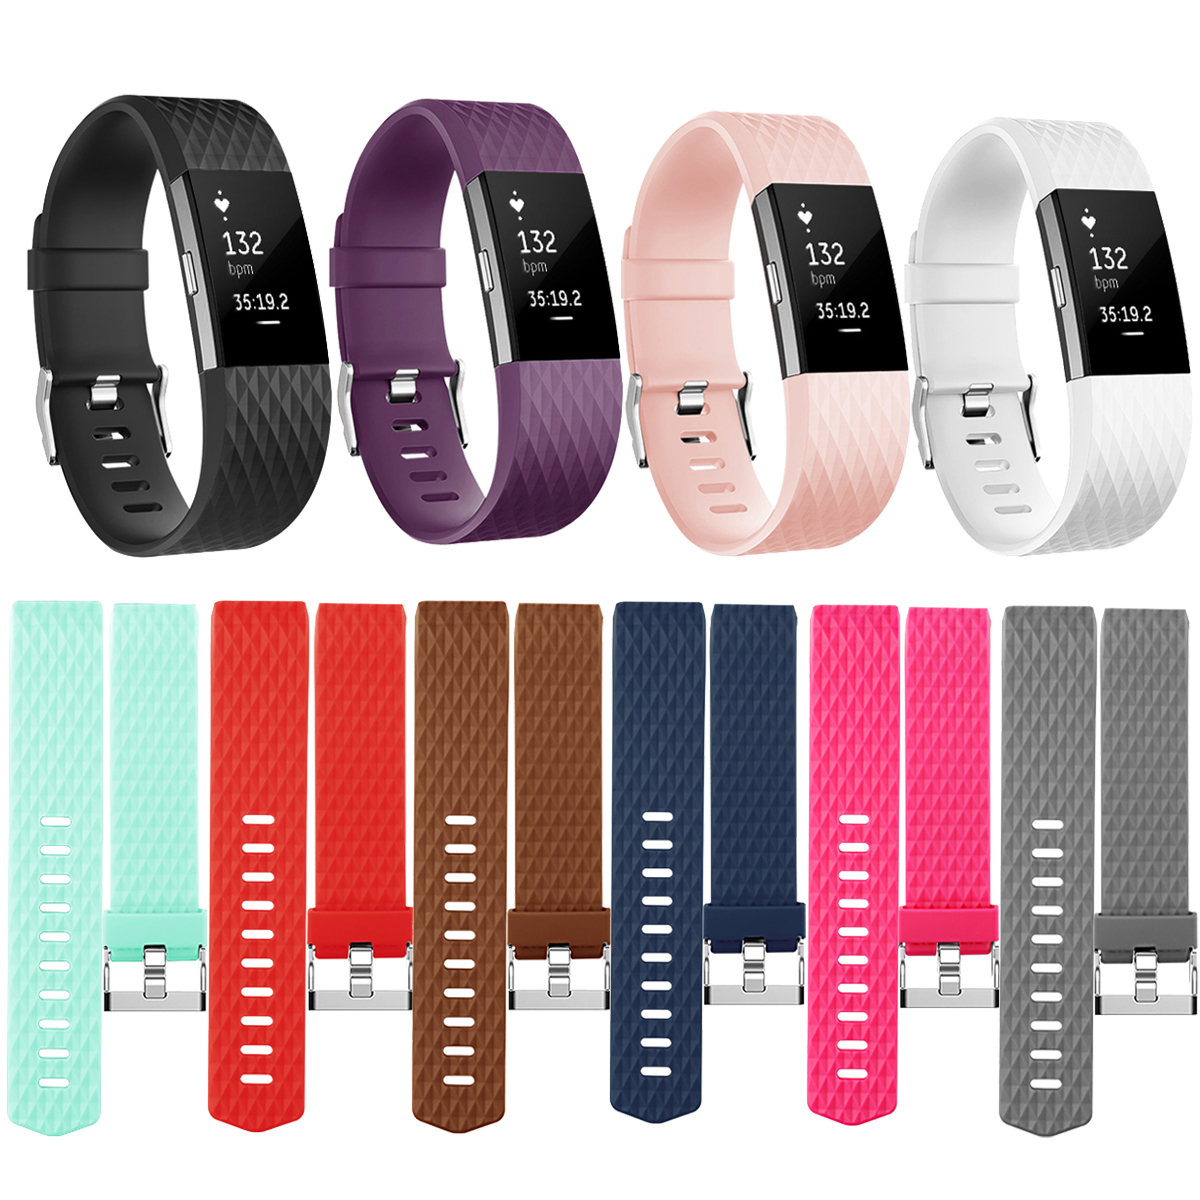 Rose /& Plum /& Teal, Large Amzpas Bands Compatible with Fitbit Charge 2 Bands Small Large Adjustable Replacement Accessories Wristbands for Women Men